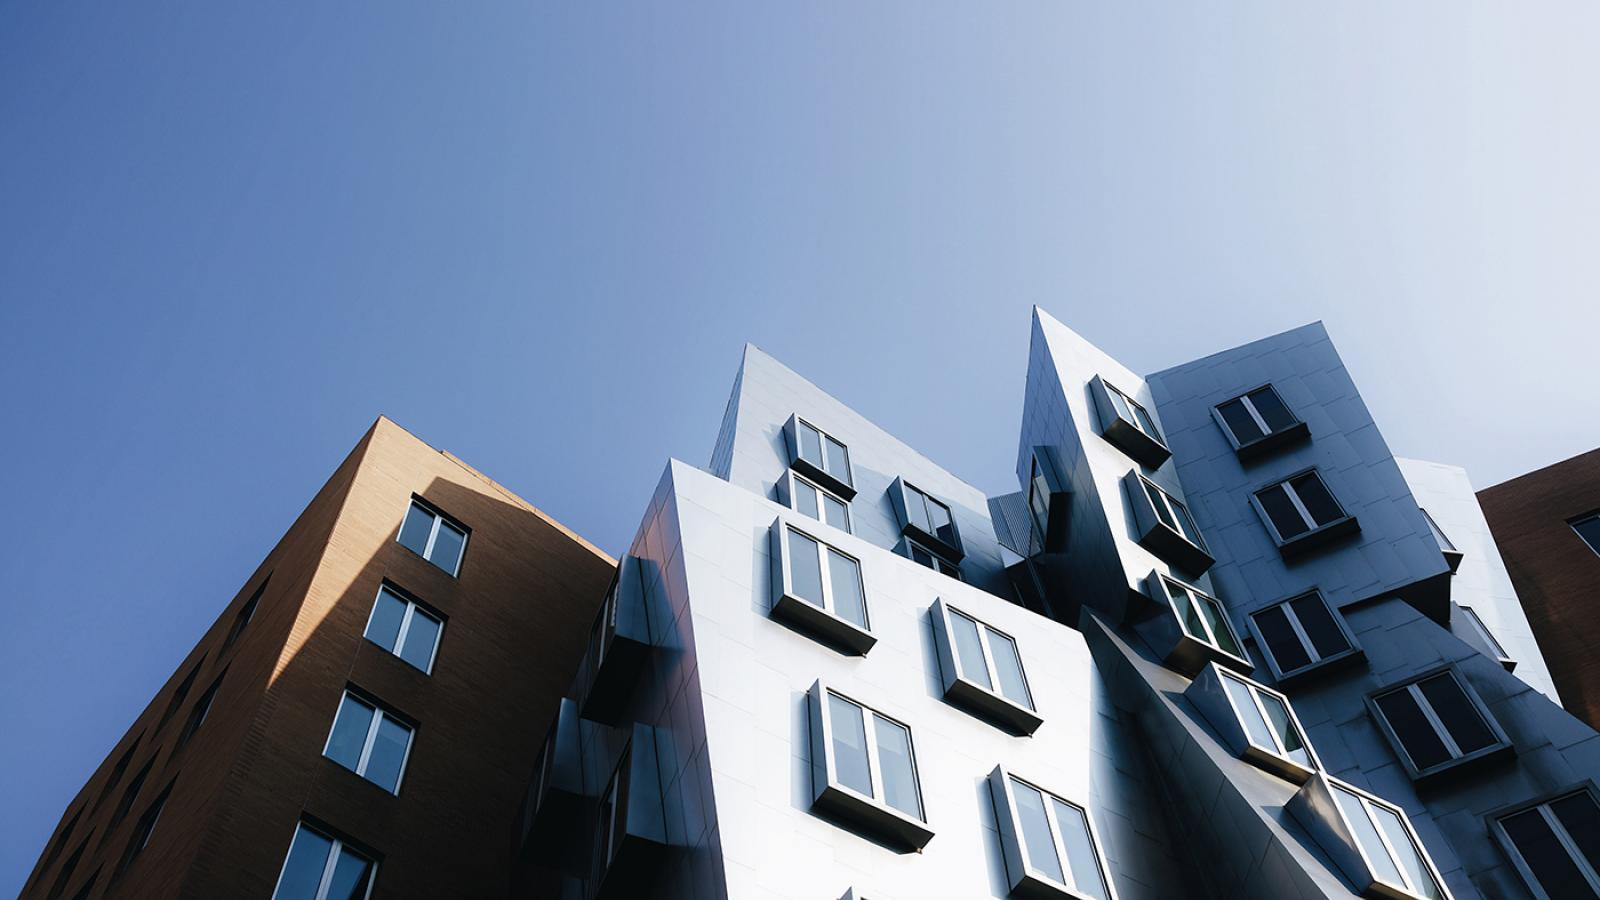 Wallpaper of the Week - Stata Center, Cambridge